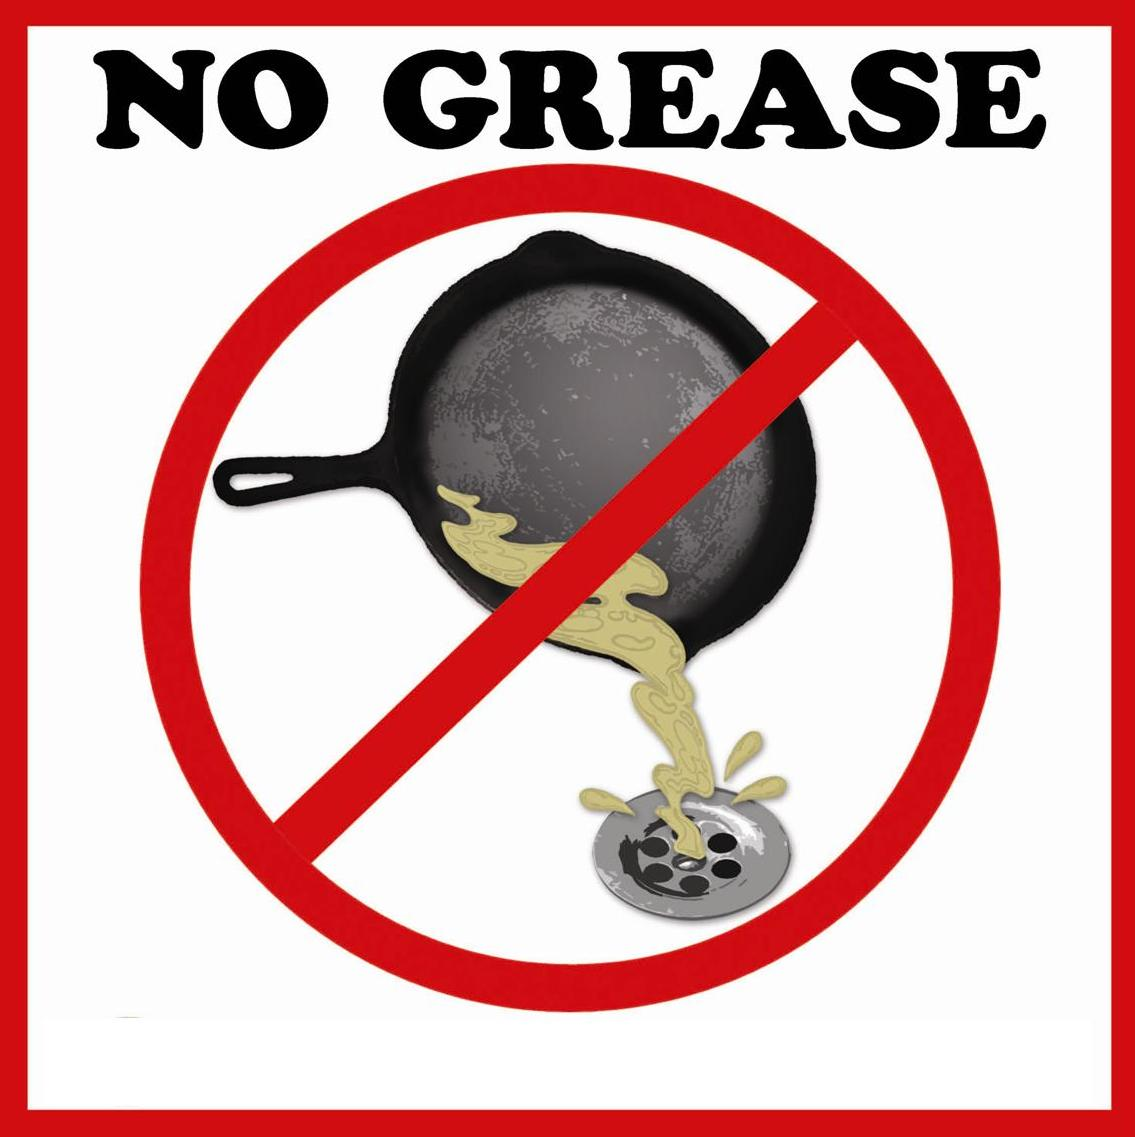 No Grease Sign